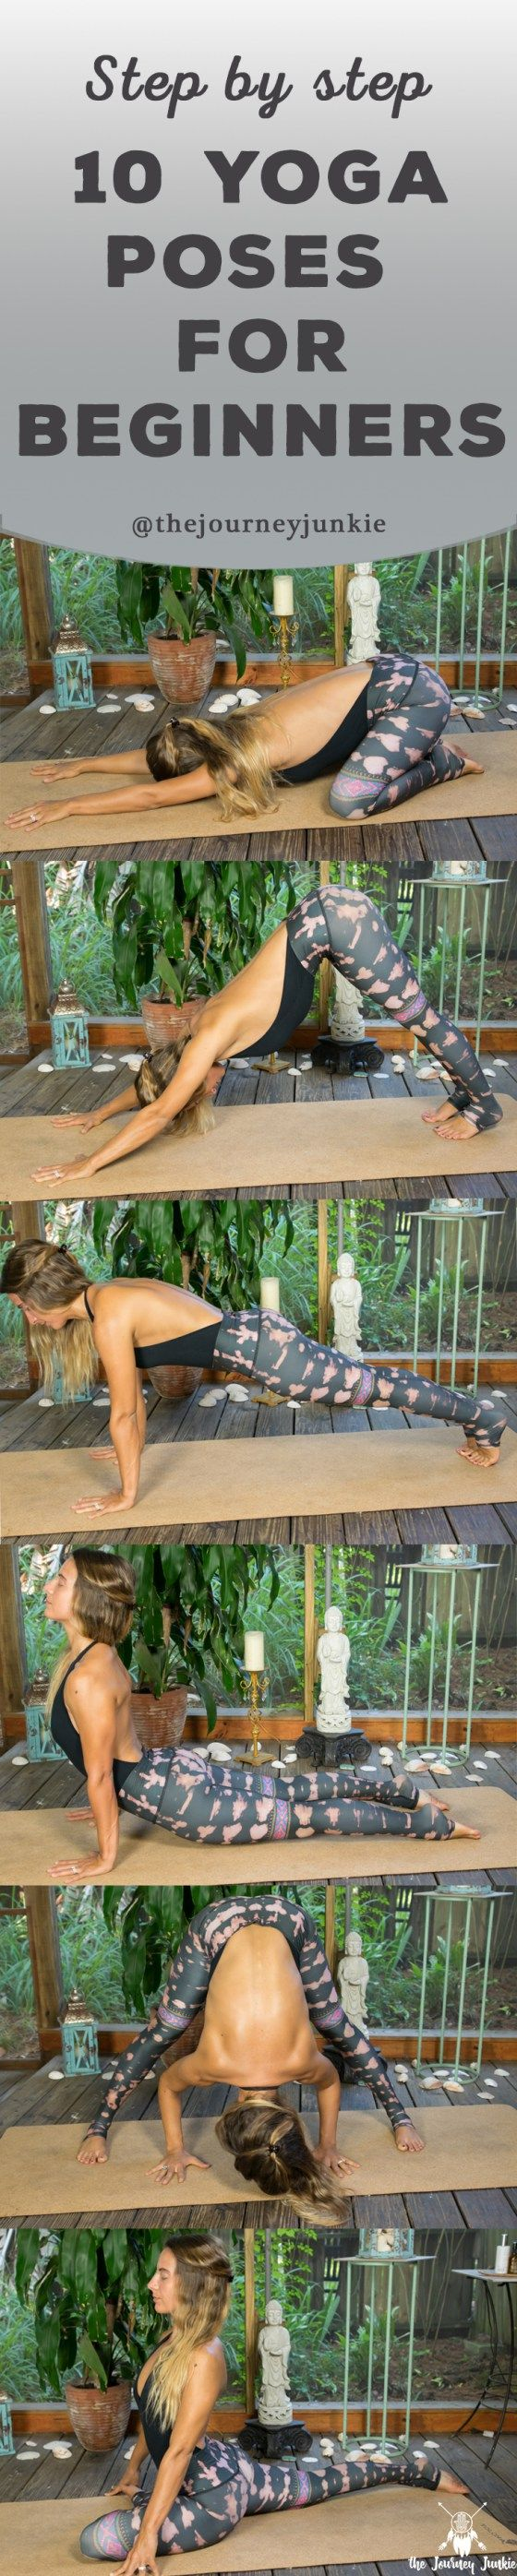 10 Yoga Poses for Beginners - Pin now, learn beginner yoga poses now!